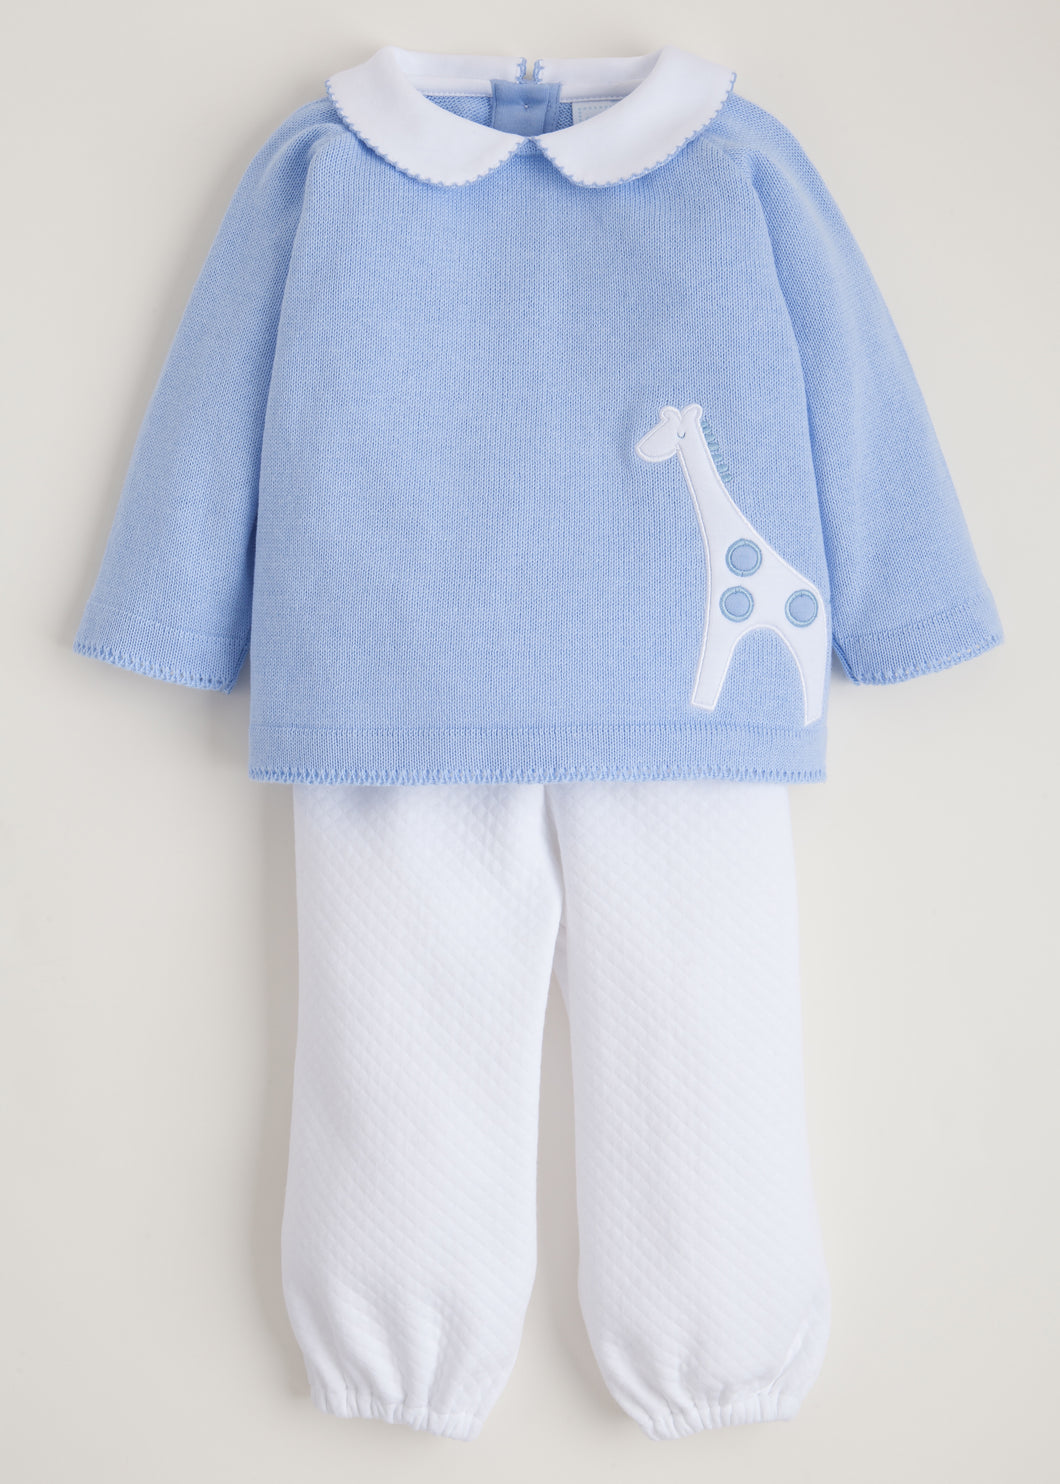 Boy Giraffe Quilted Sweater Set